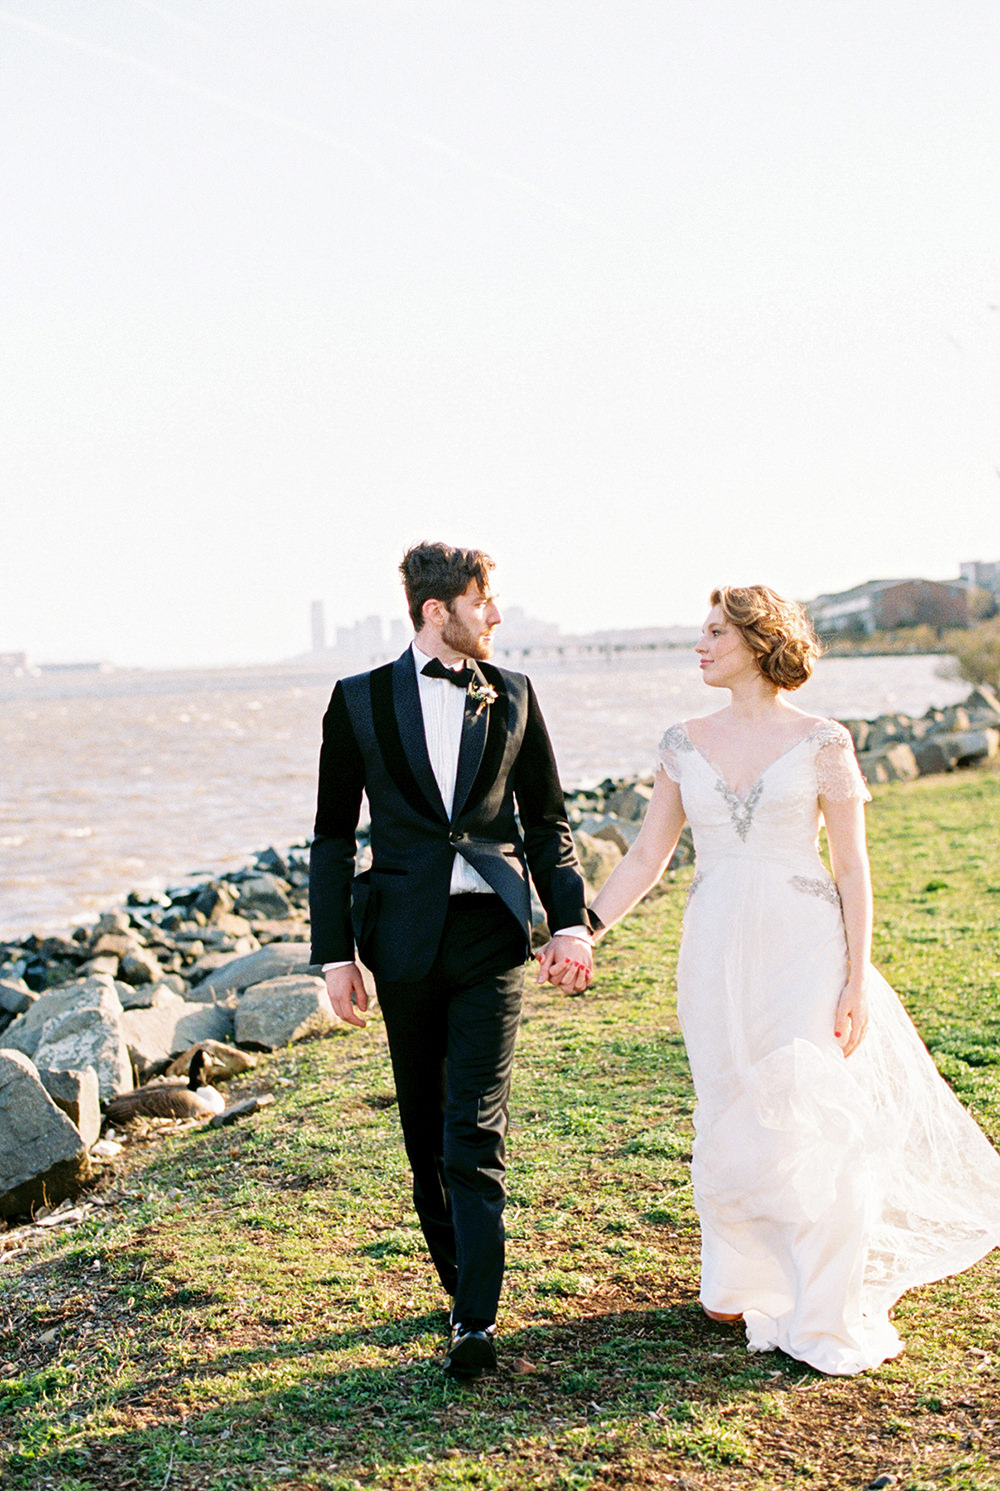 For the Love of Copper Wedding Inspiration - photo by Alexis June Weddings https://ruffledblog.com/for-the-love-of-copper-wedding-inspiration